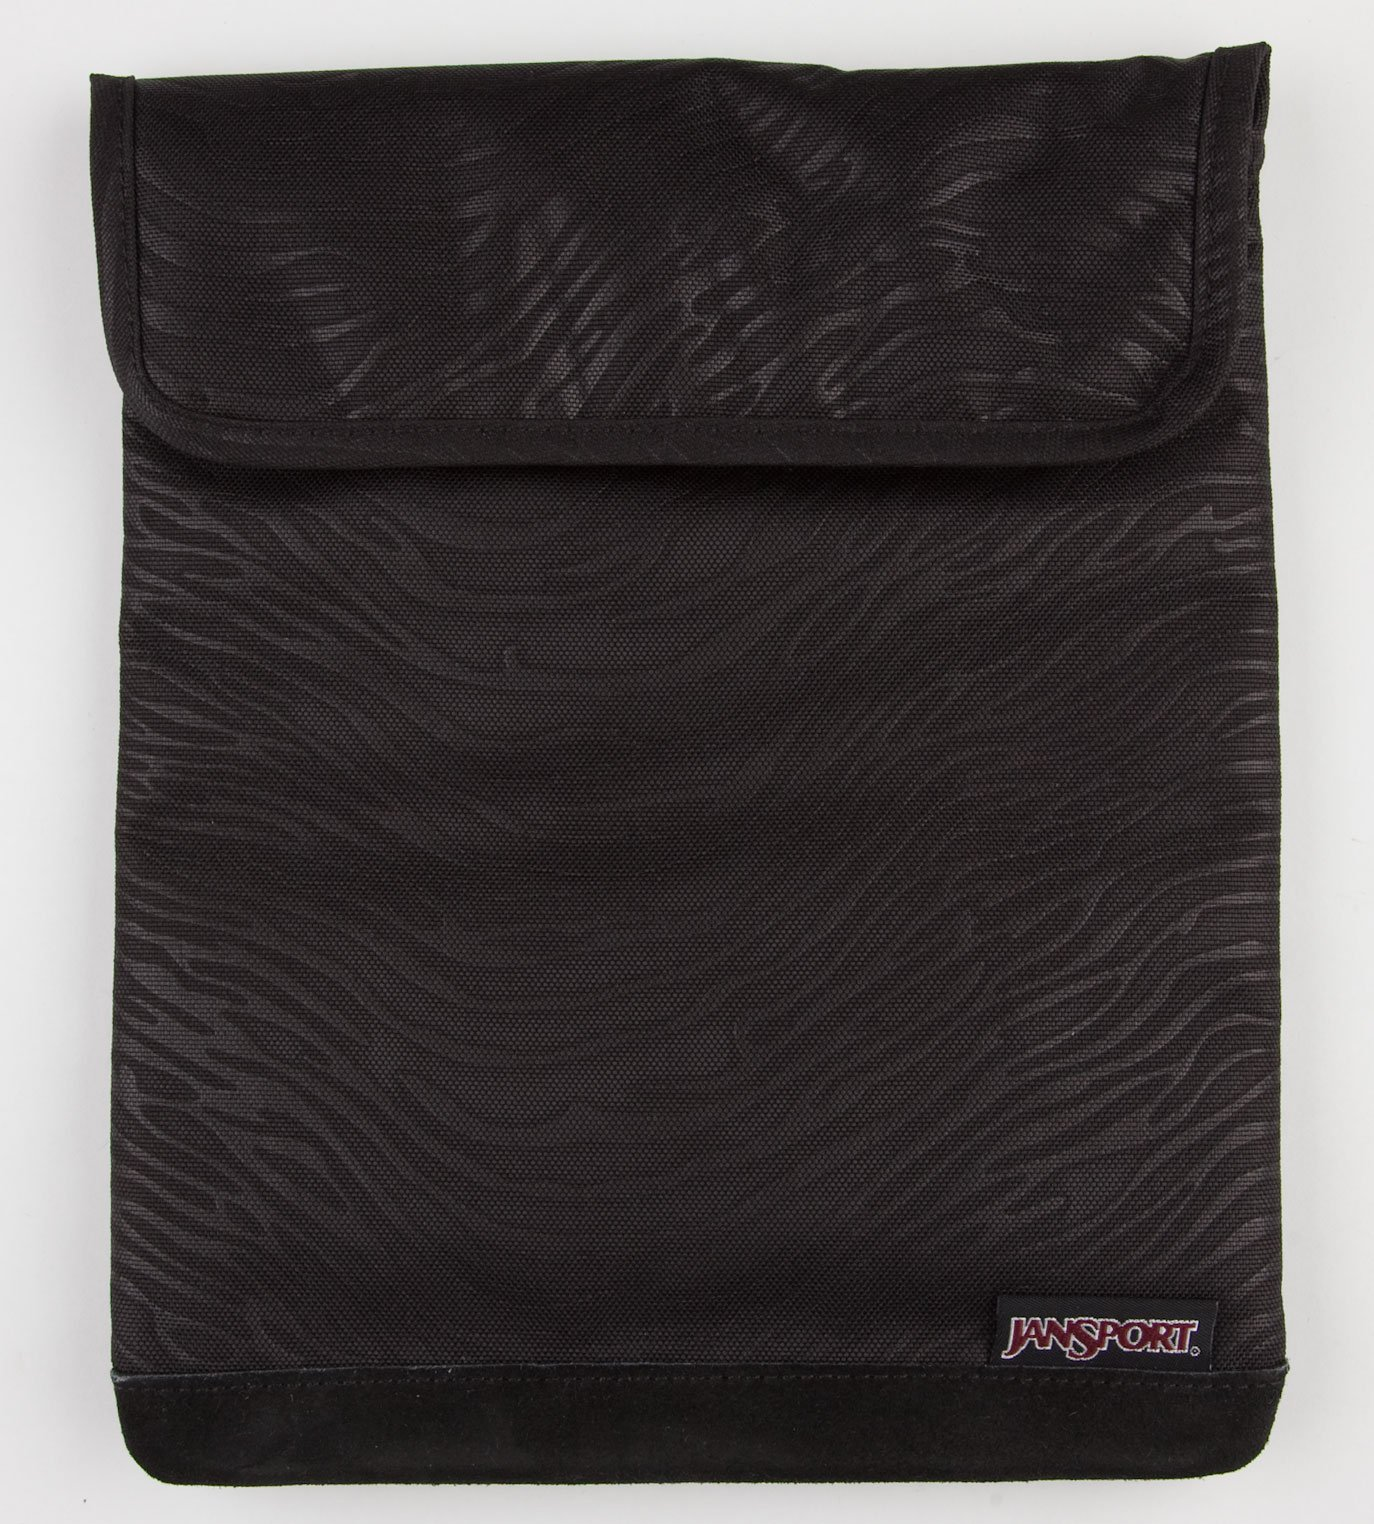 JanSport 2.0 Tablet Sleeve (Black Gloss Zebra) by JanSport (Image #1)